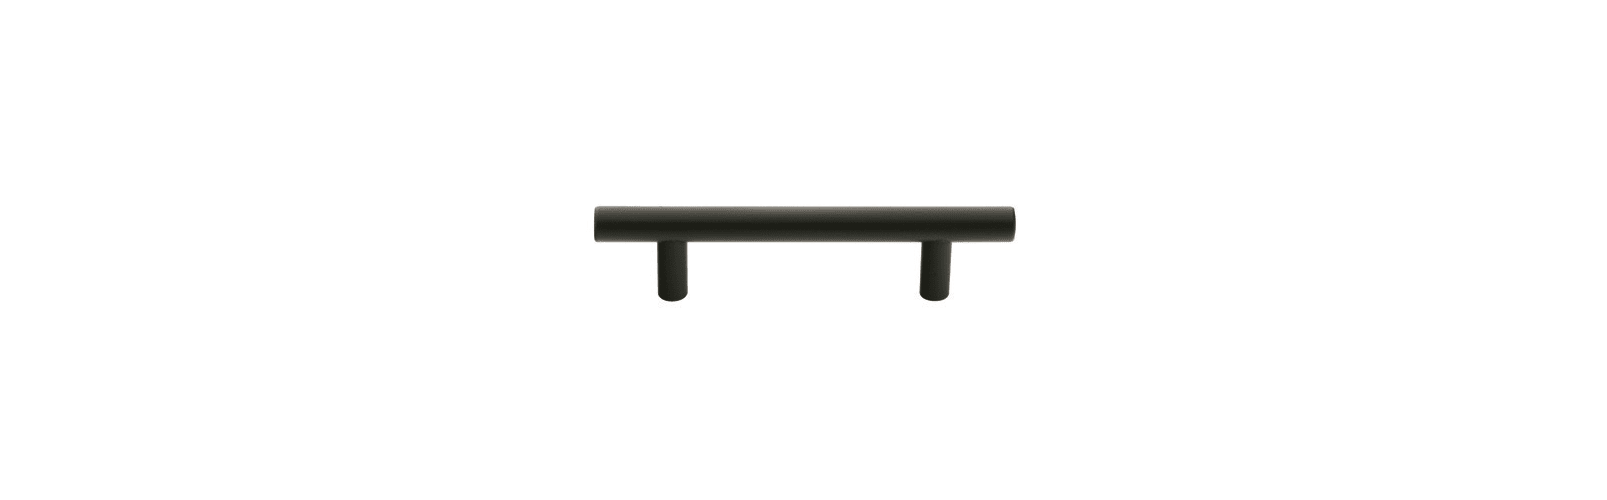 Emtek 86364US10B Oil Rubbed Bronze Brass Bar Mid Century Modern 10